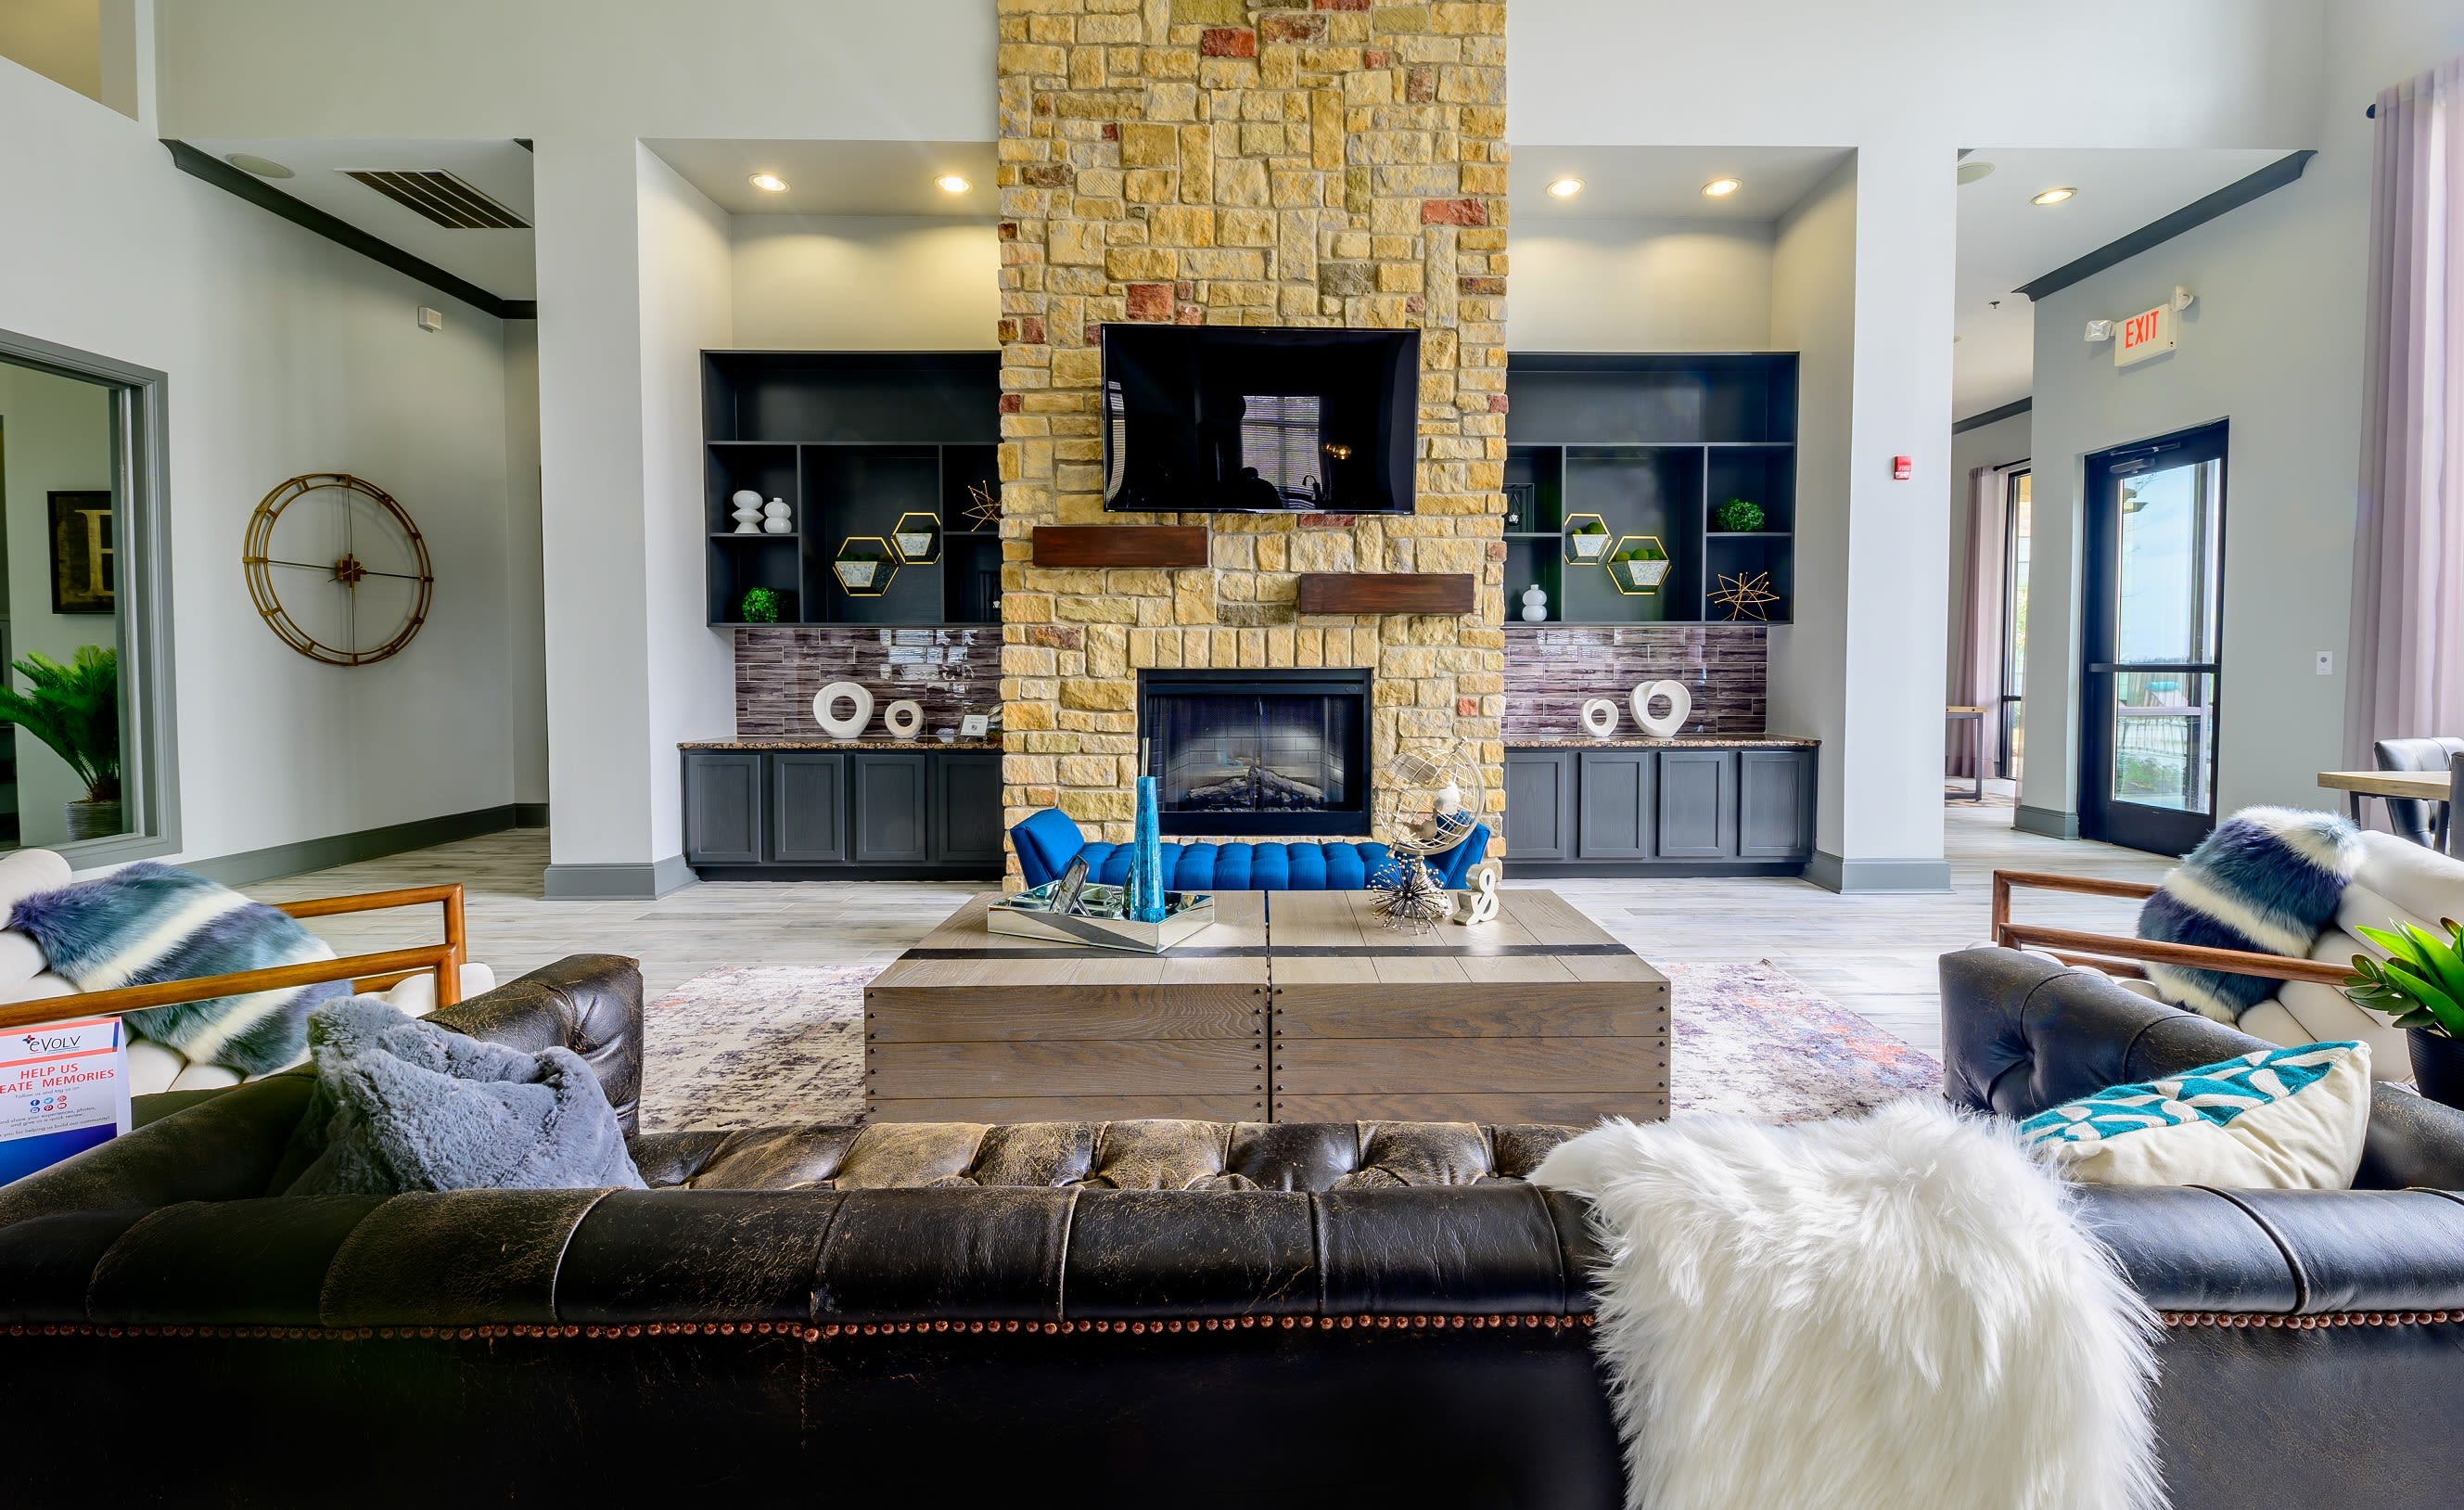 Modern decor in spacious living room of model home at Evolv in Mansfield, Texas